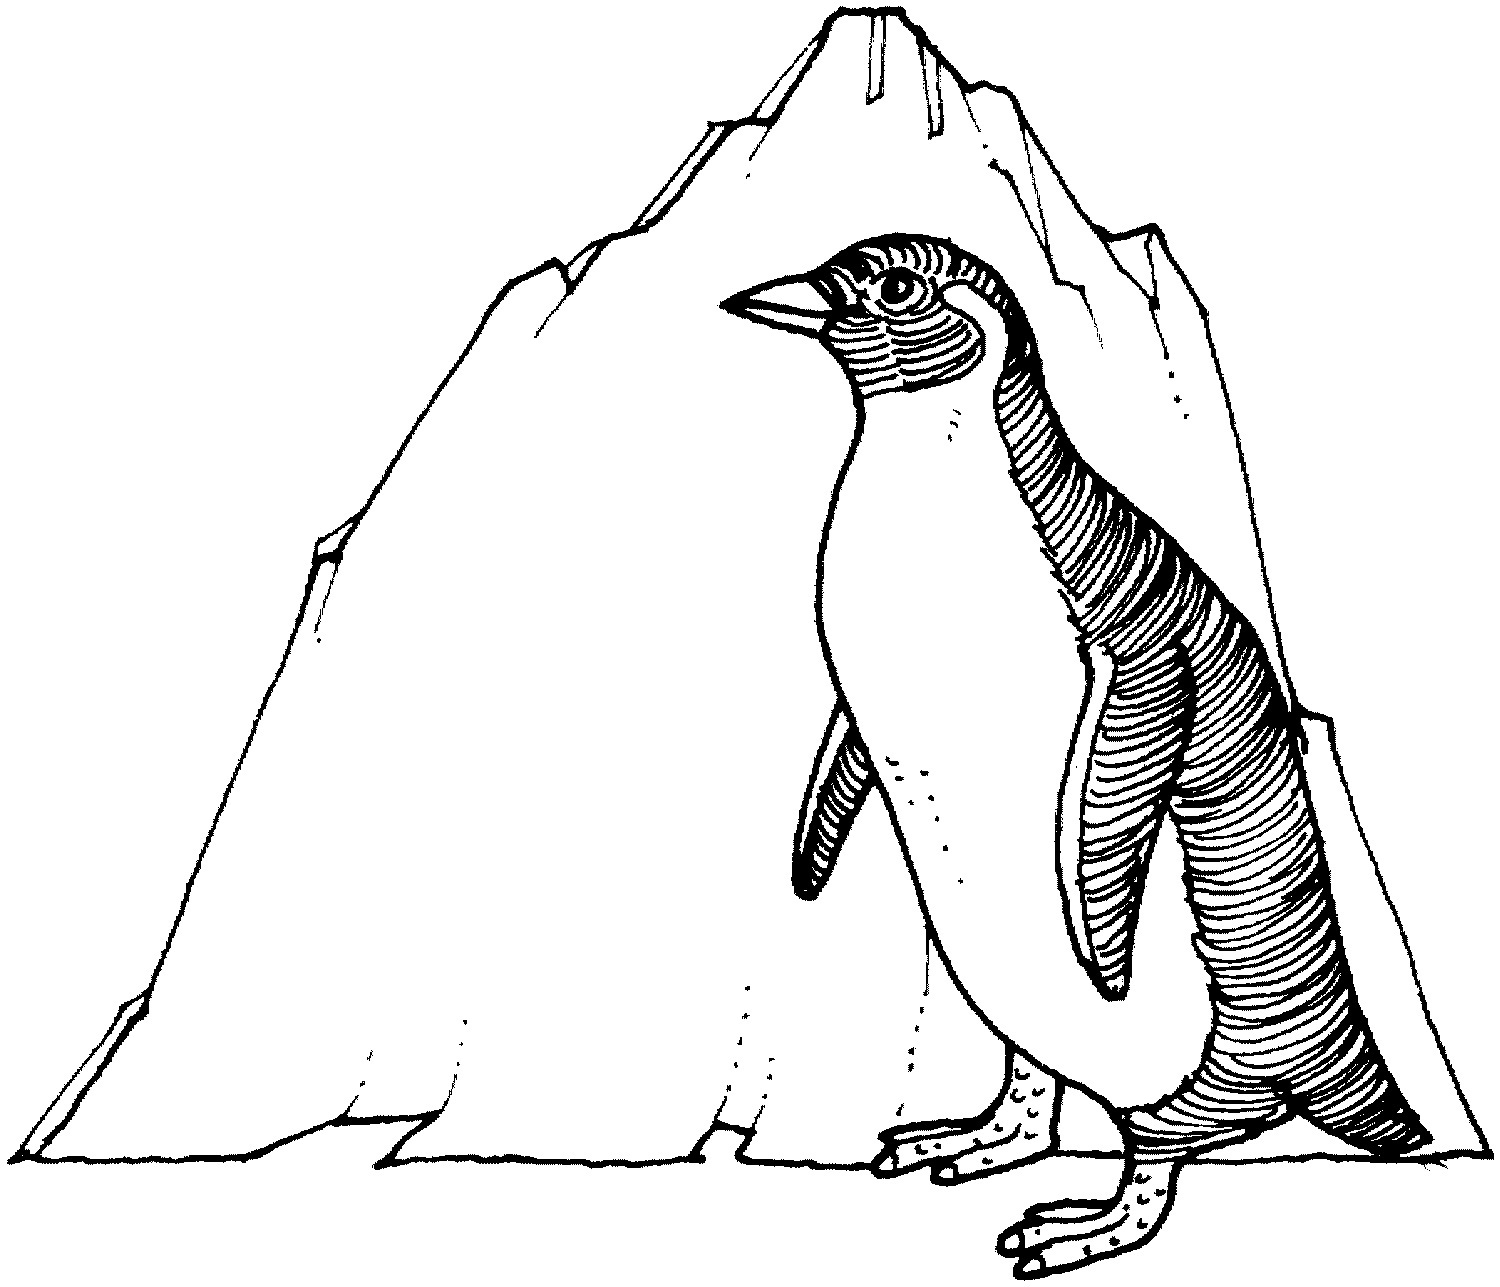 Penguin Line Drawing at GetDrawings.com | Free for personal use ...